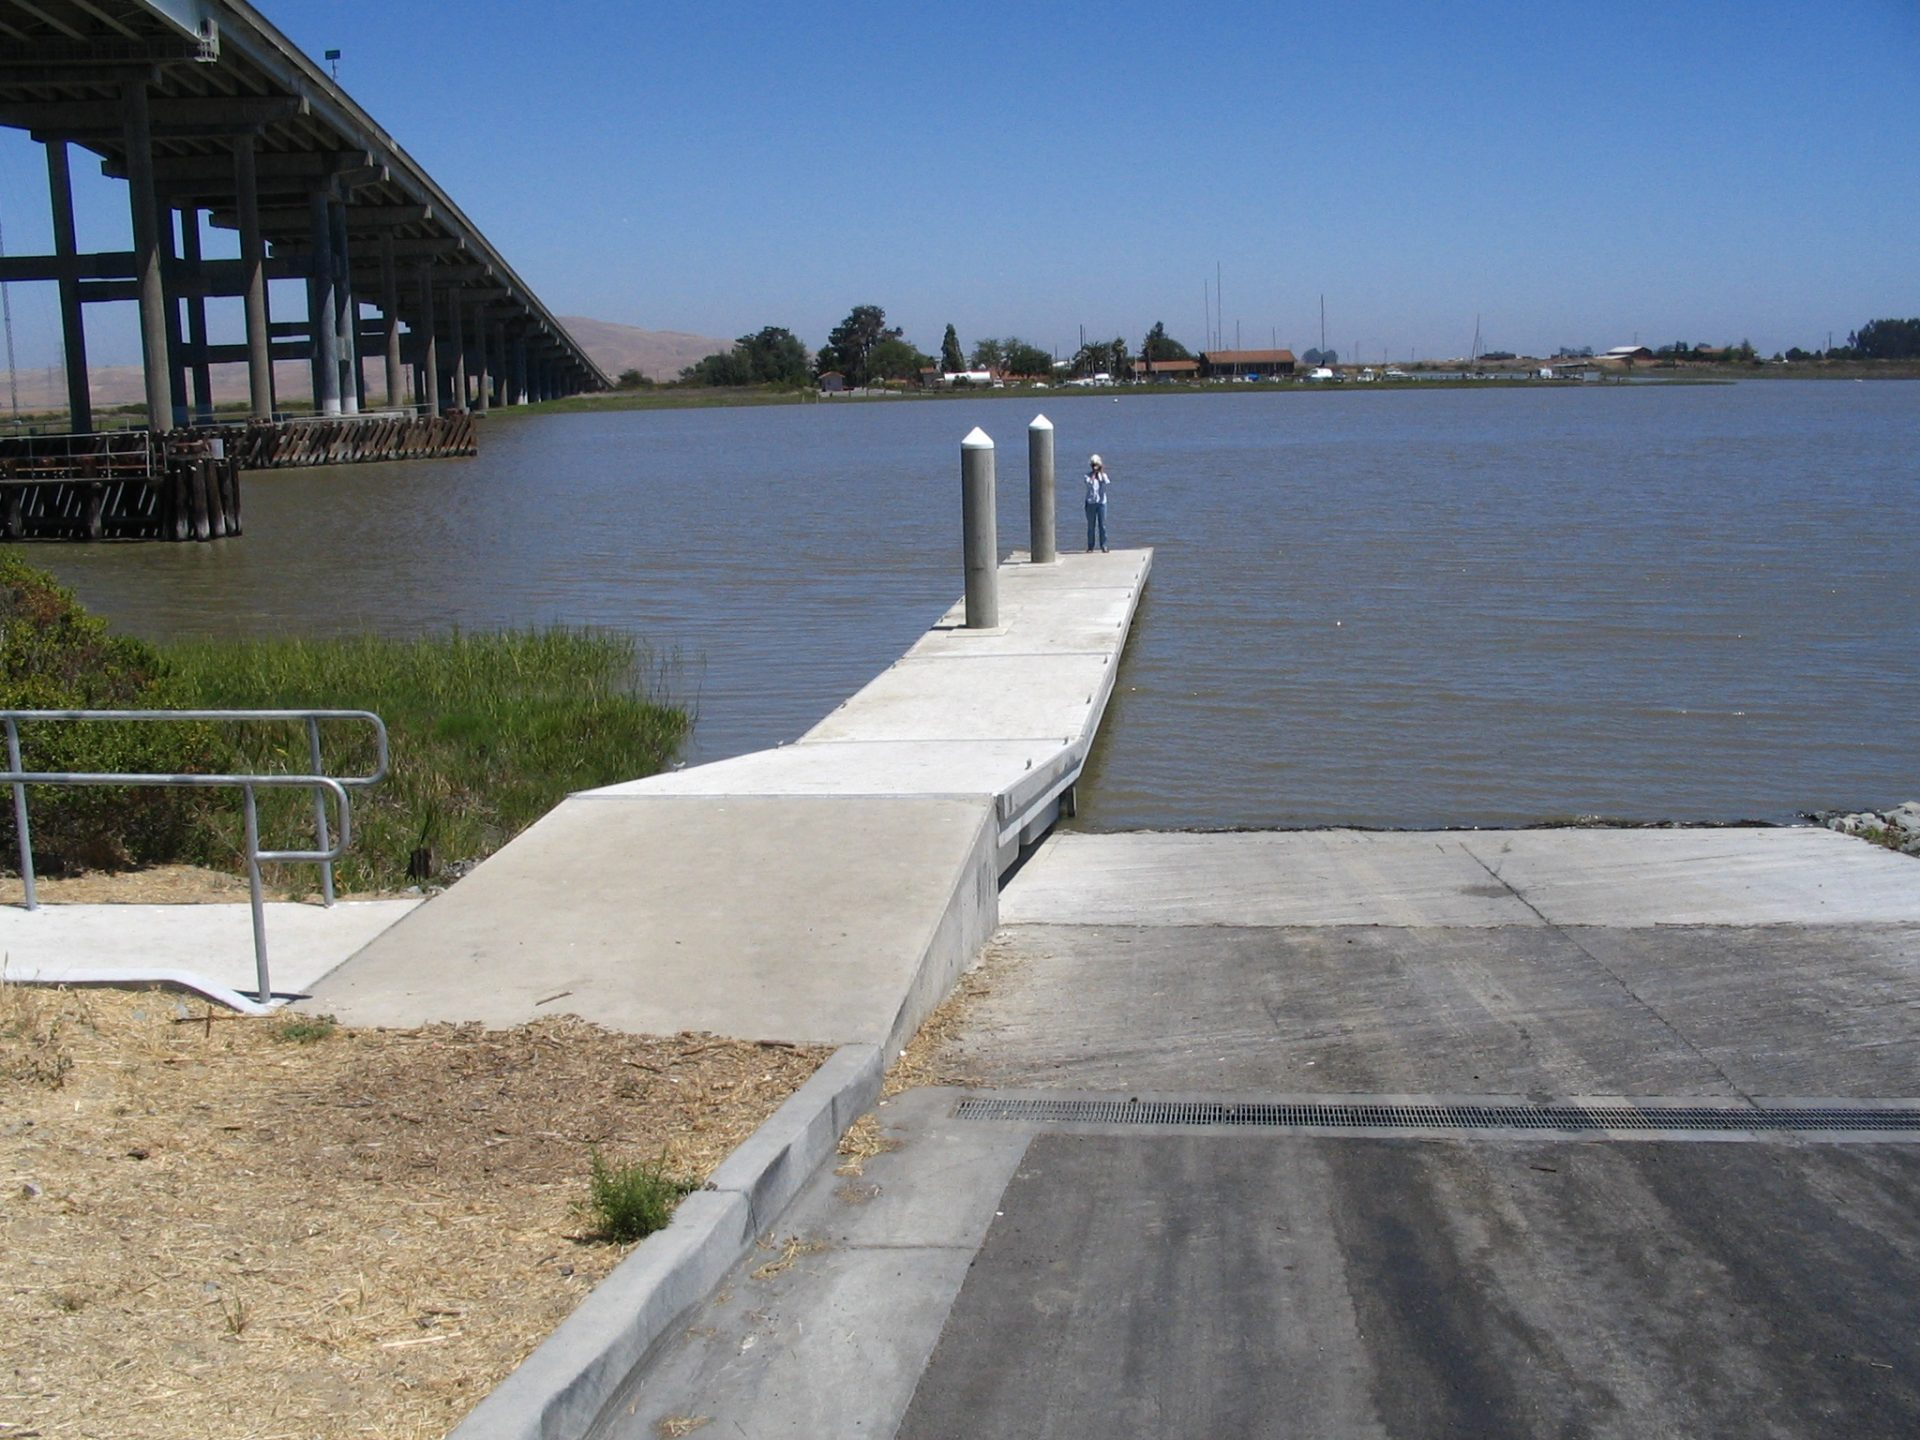 person standing on end of floating dock, next to boat ramp